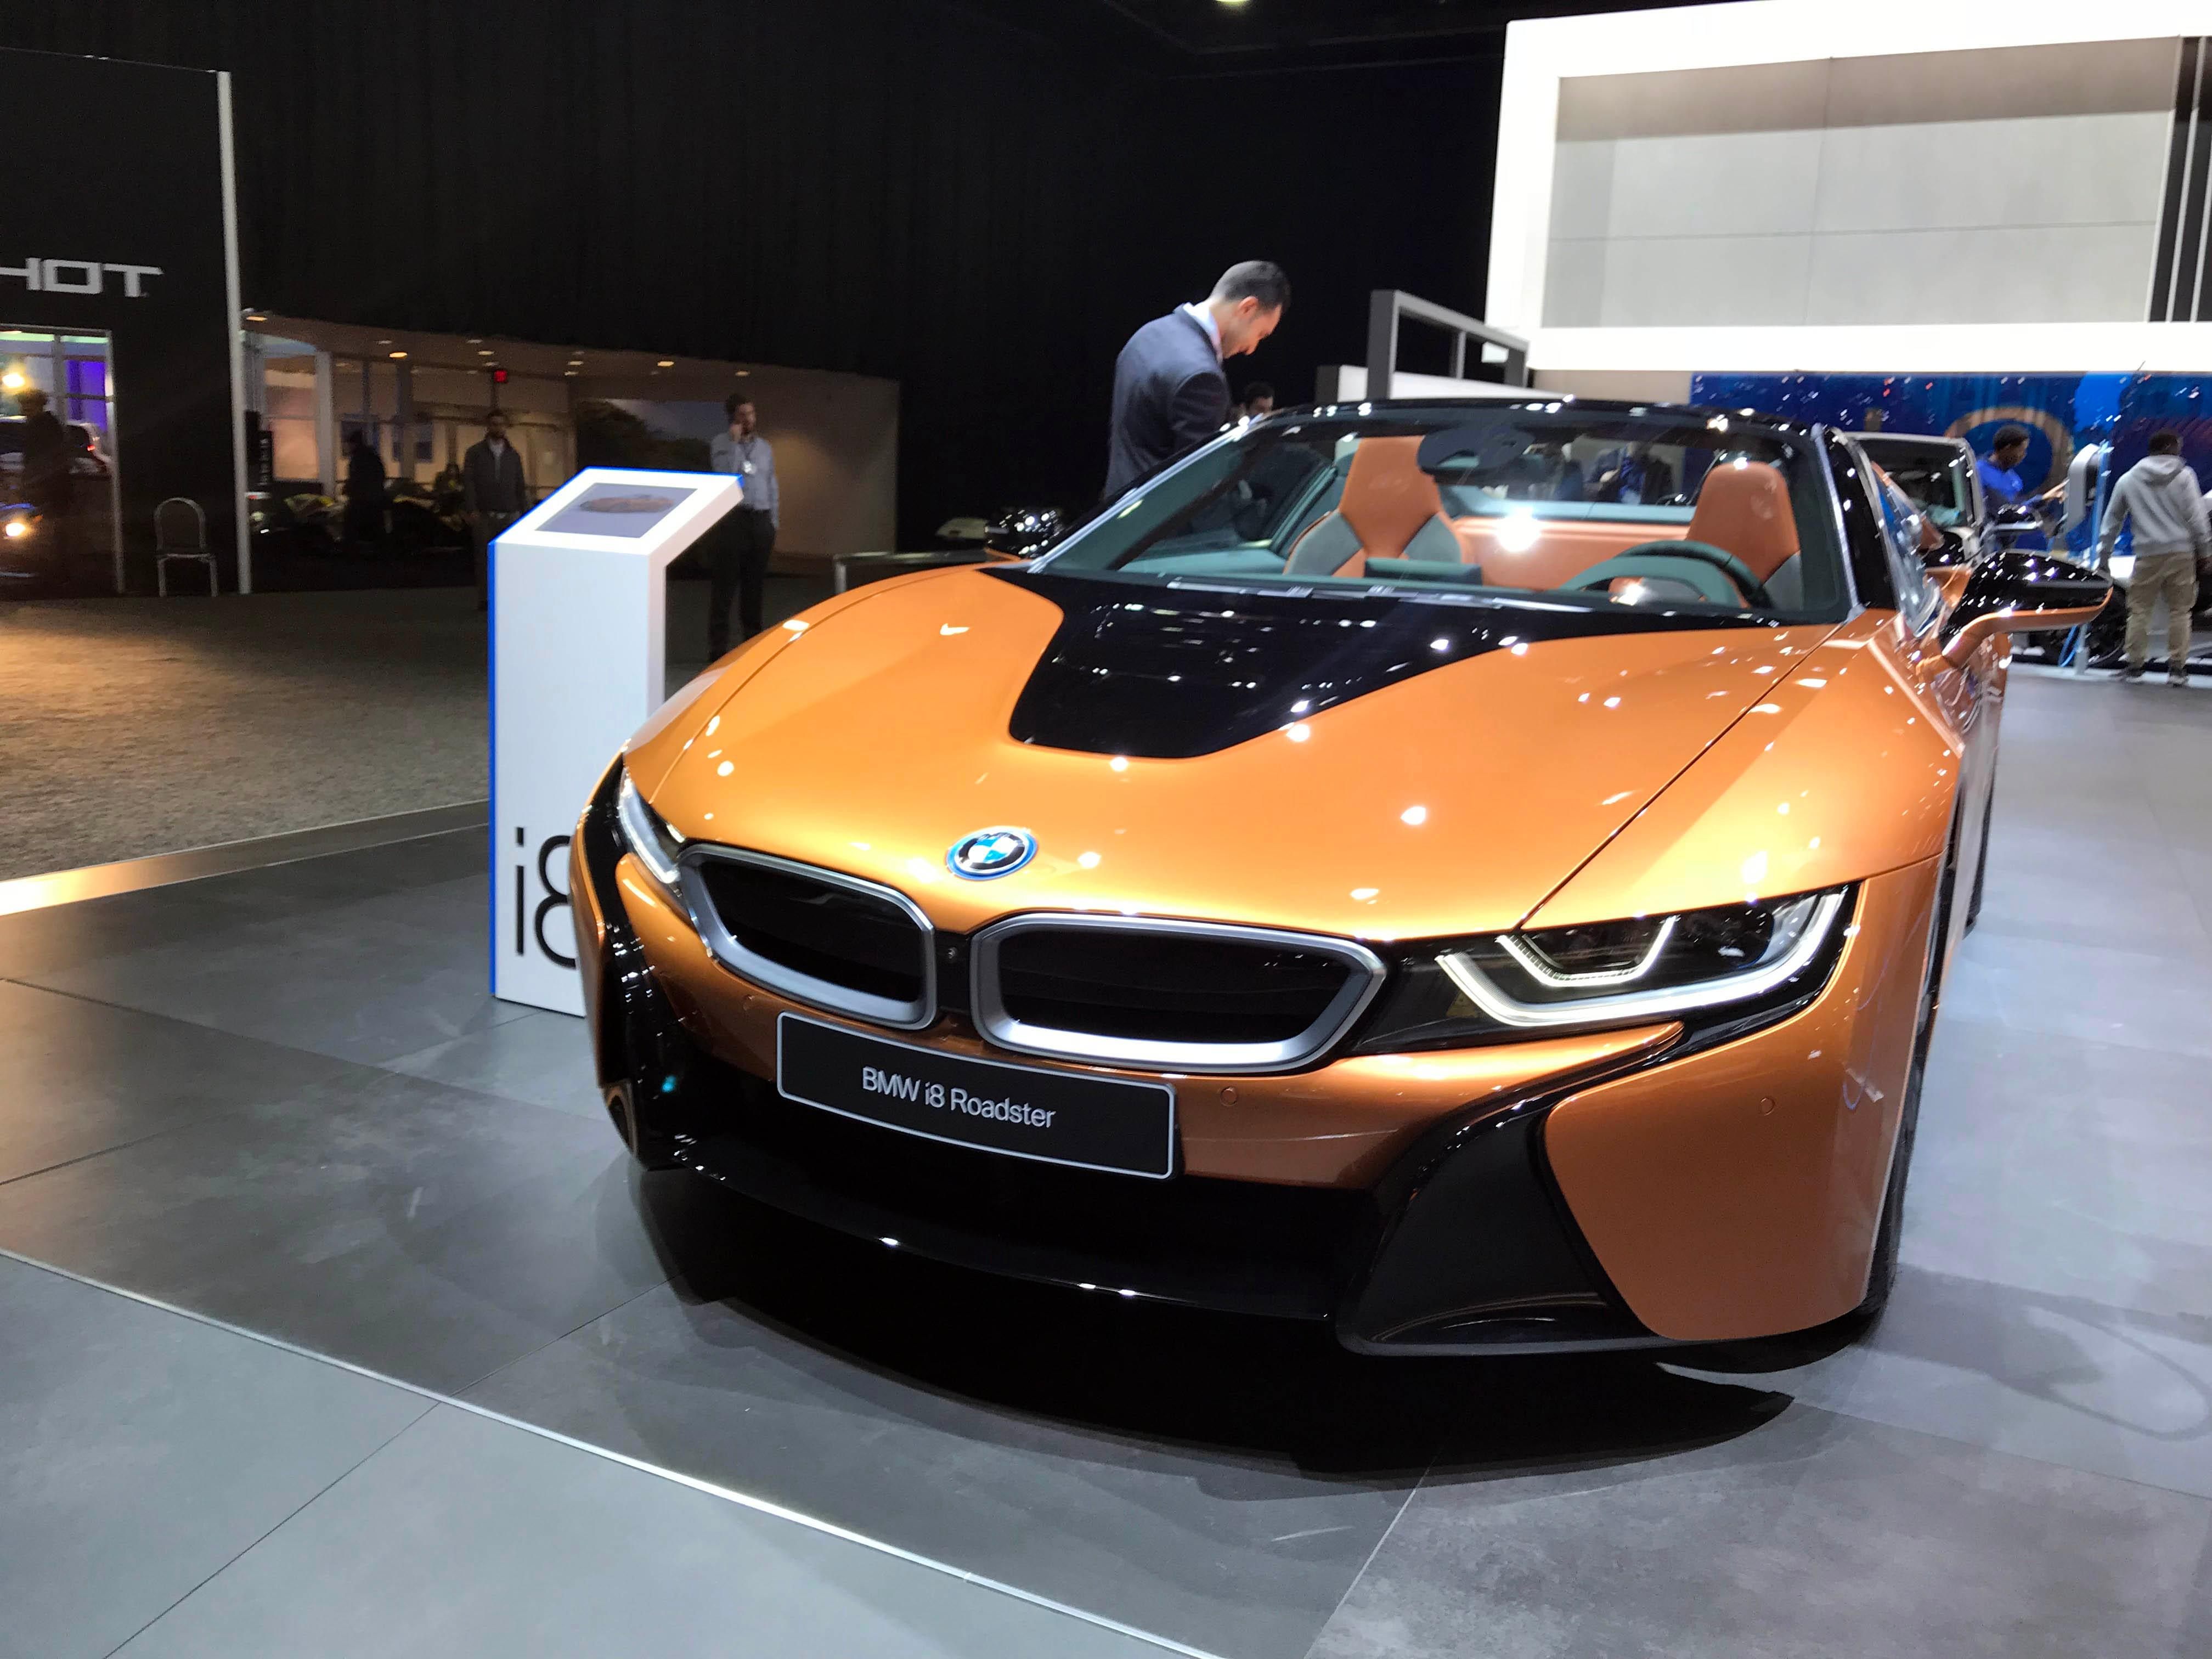 PHOTO GALLERY Cool Cars At The Detroit Auto Show - Cool cars images